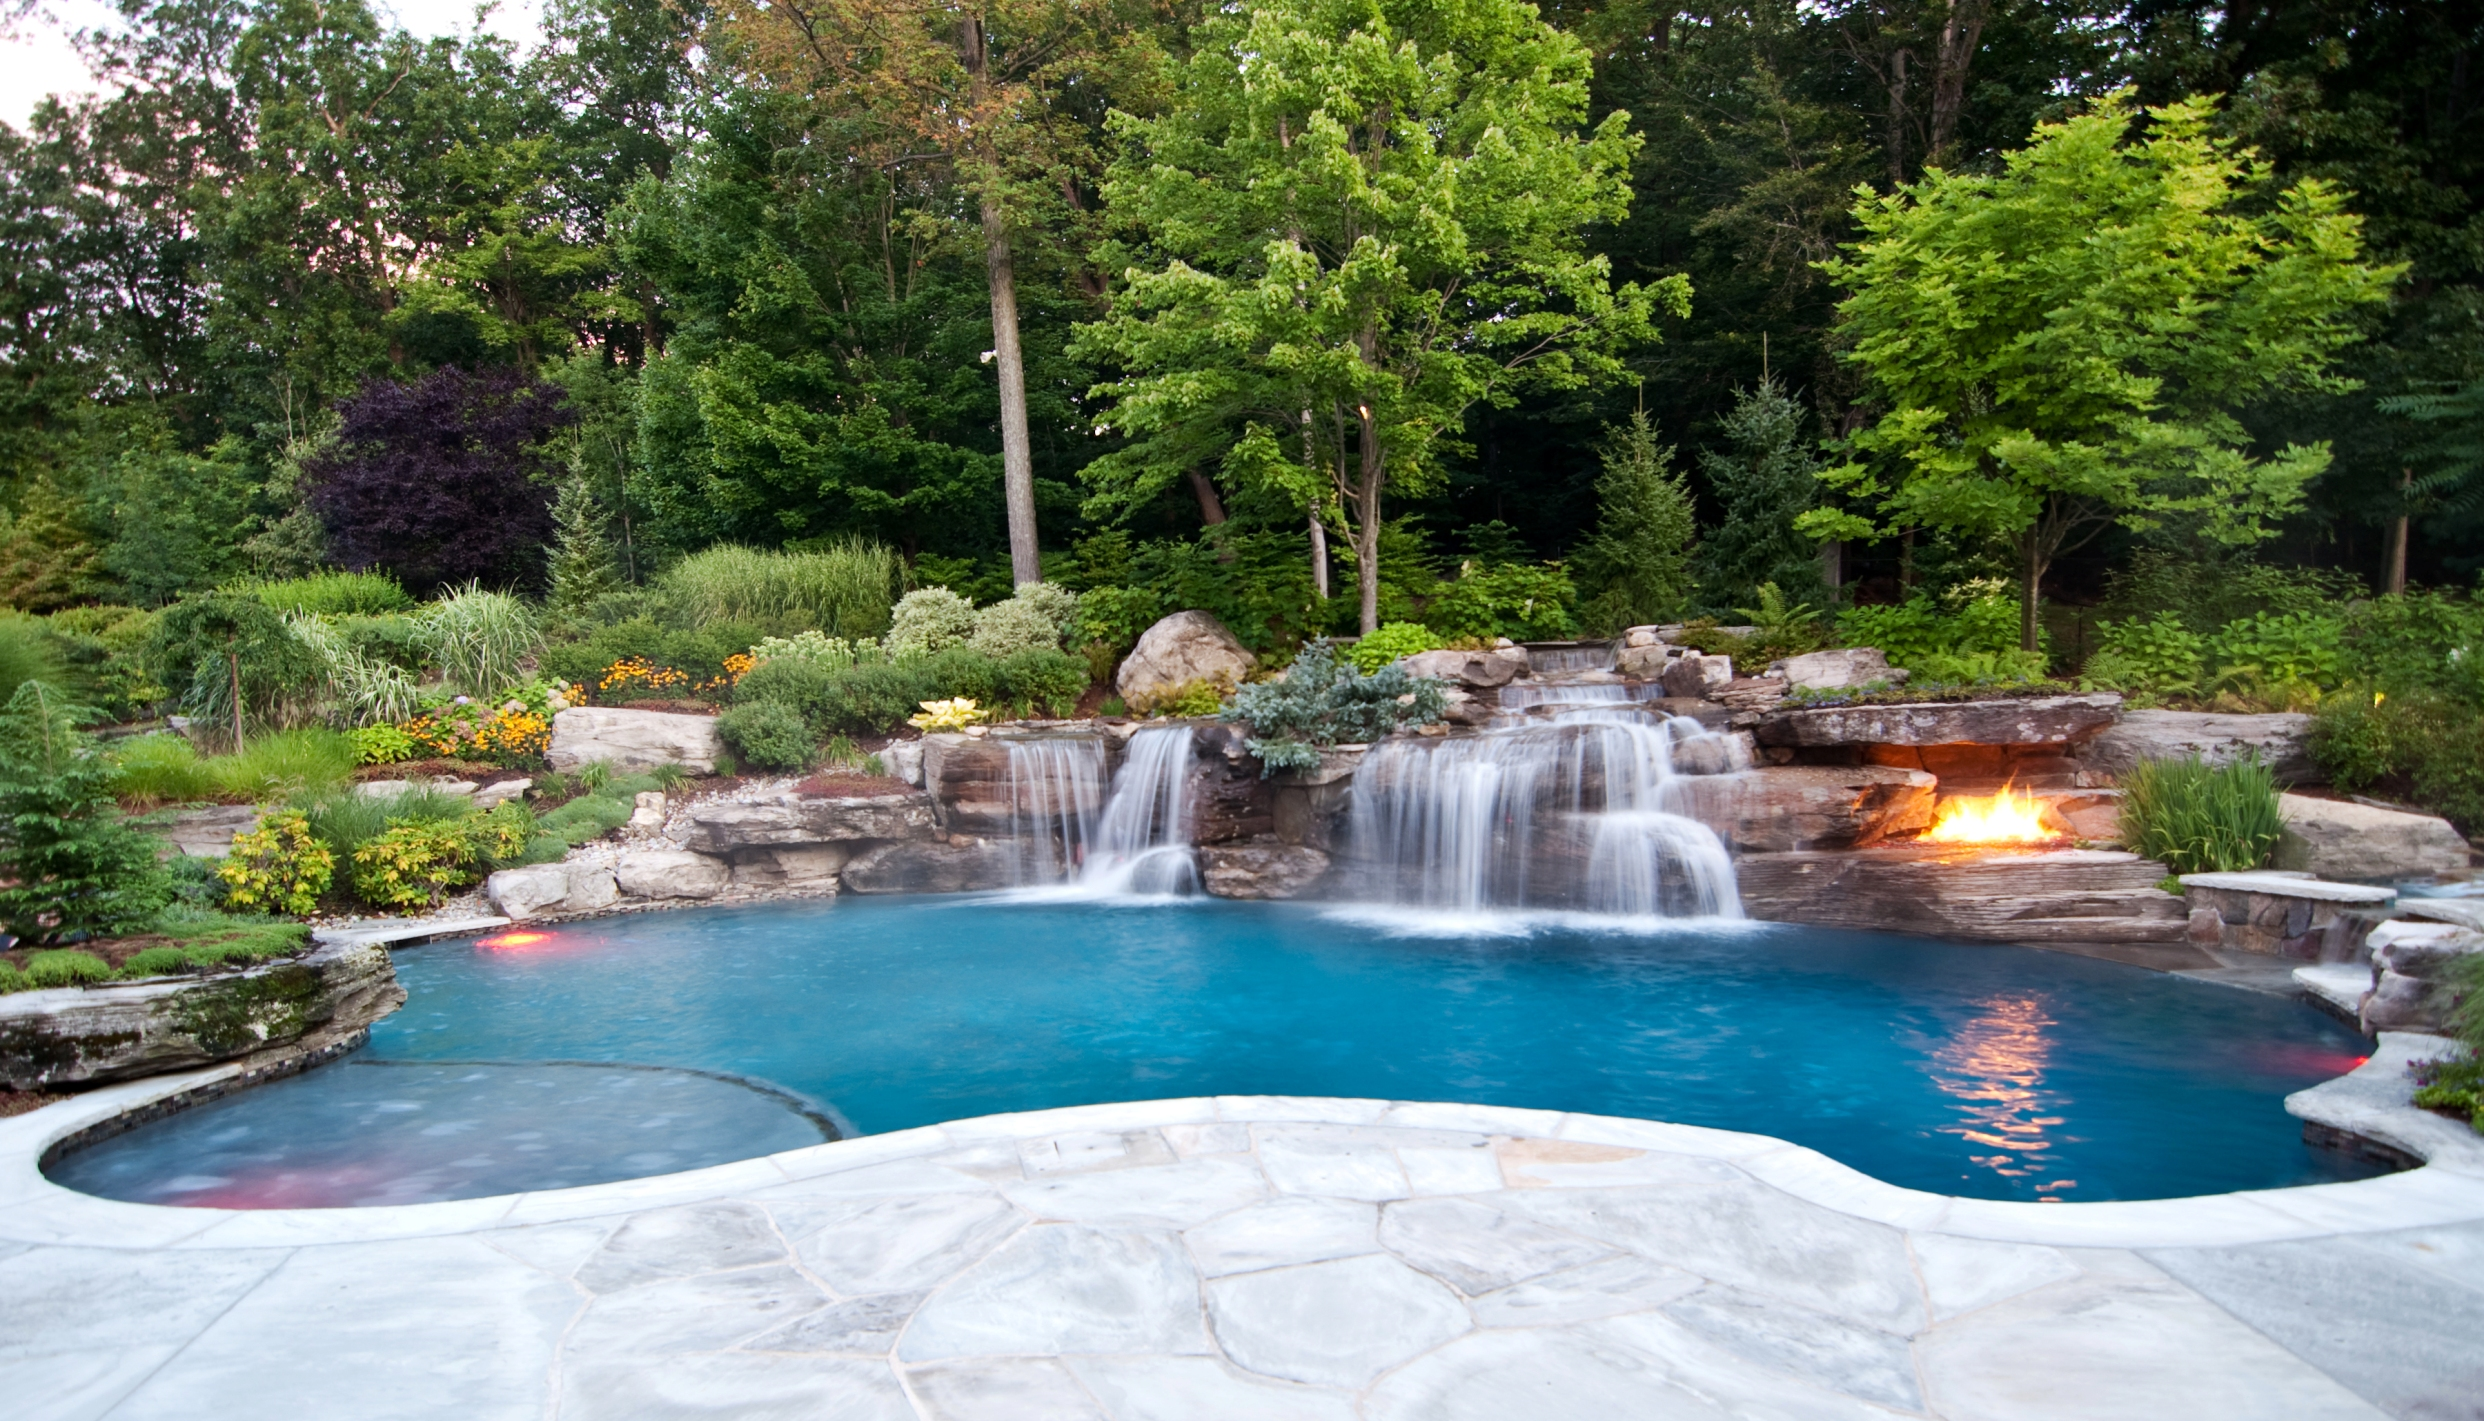 New pool construction northern virginia maryland and for Backyard inground pool ideas